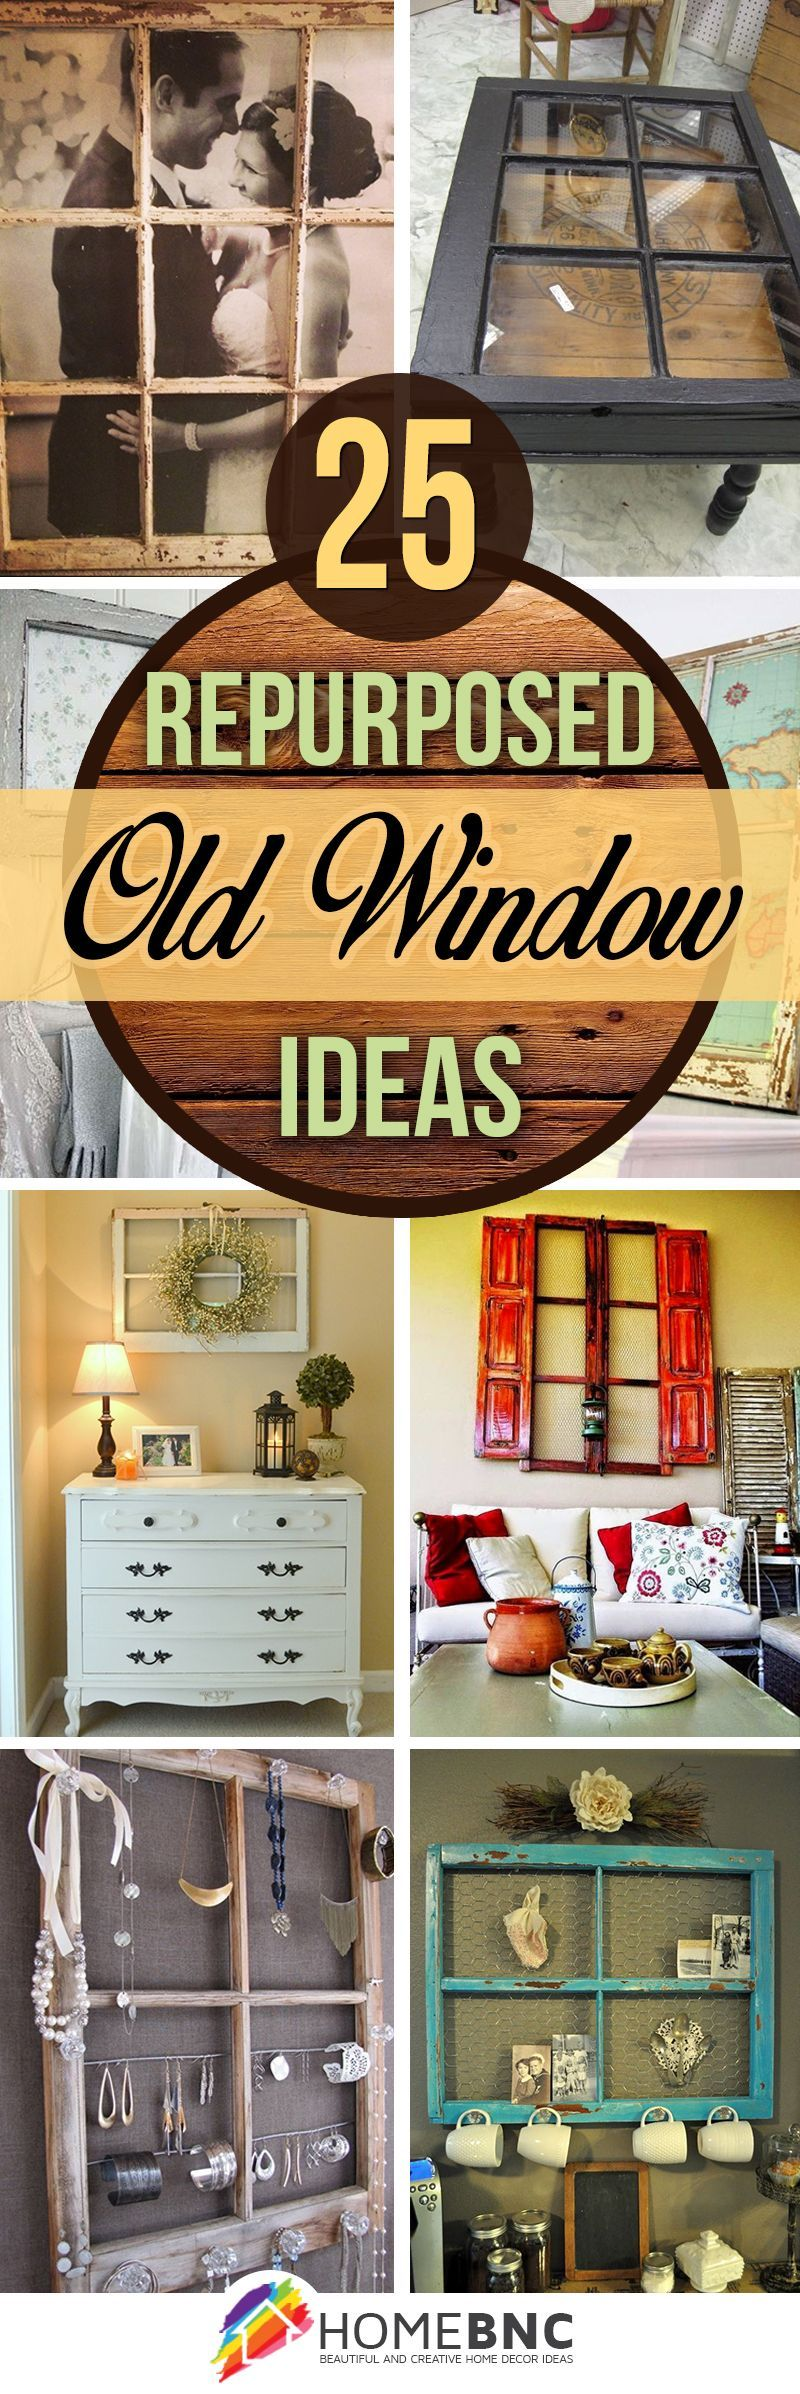 Old window decor   repurposed old window ideas to add charm to your home  windows